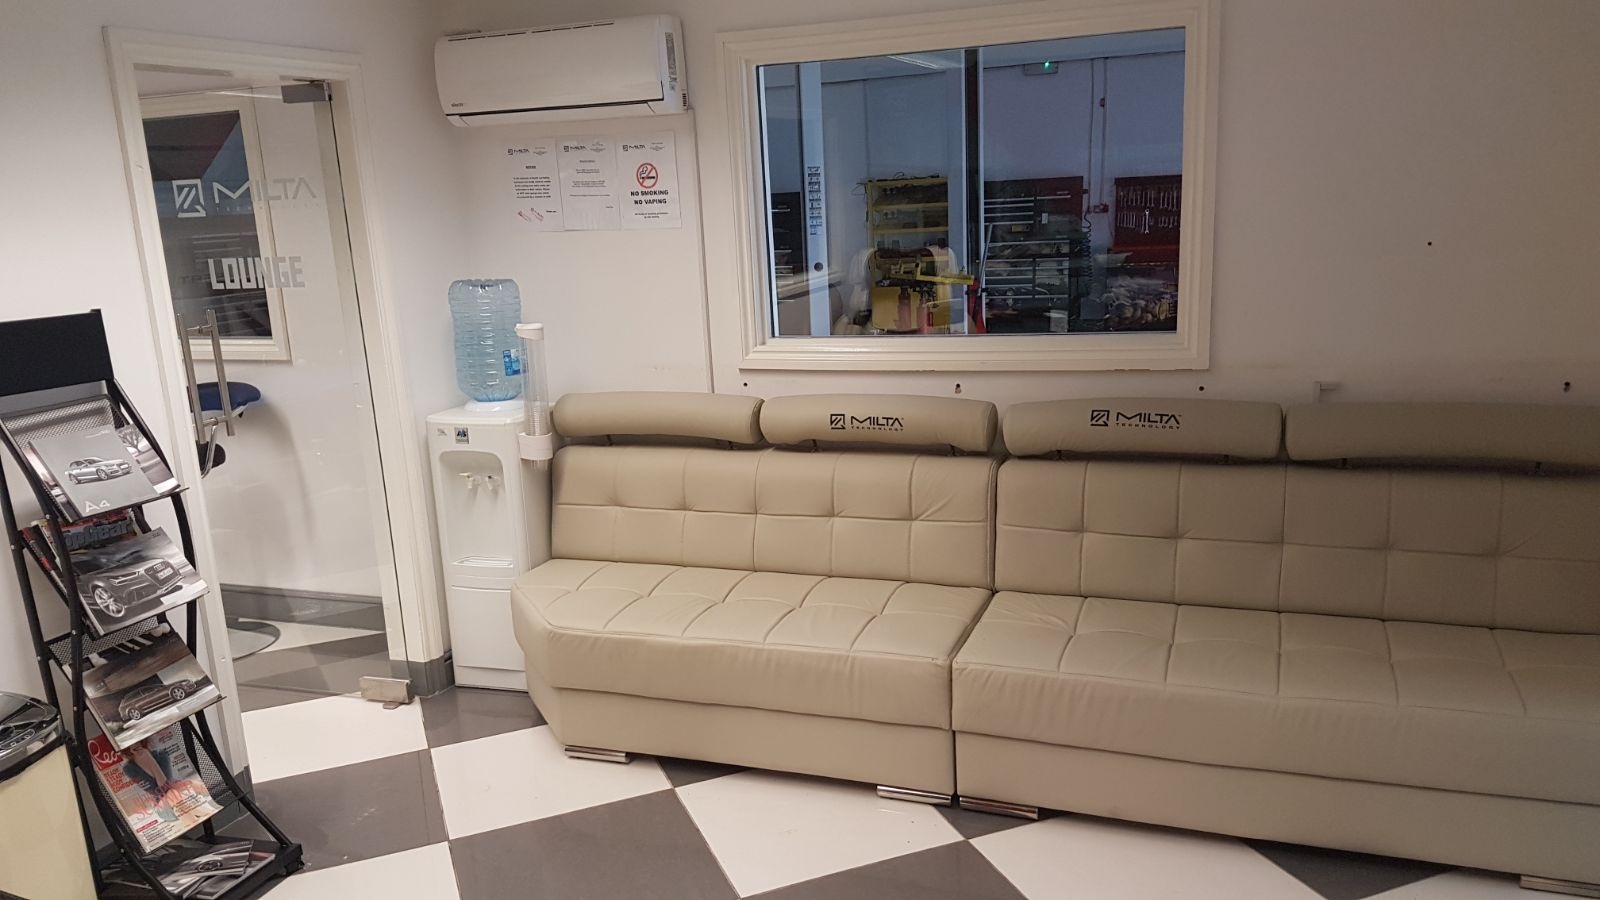 milta technology automatic gearbox repair - waiting room